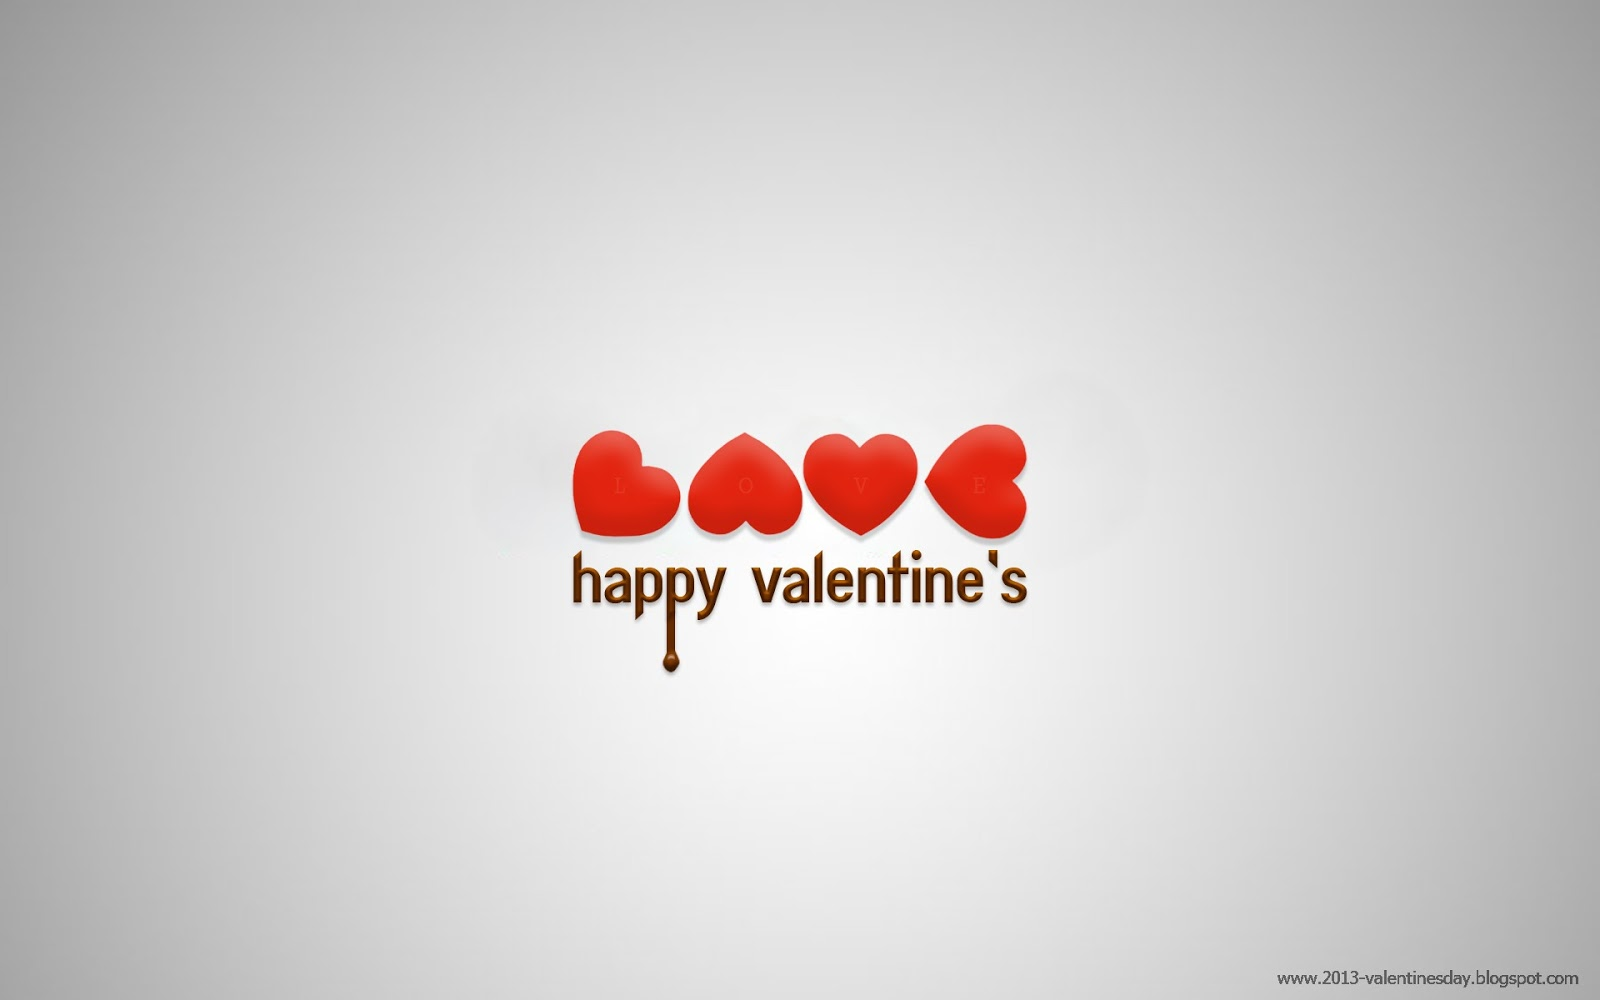 happy valentines day 2013 hd wallpapers (1024px 1920px) - ucapan